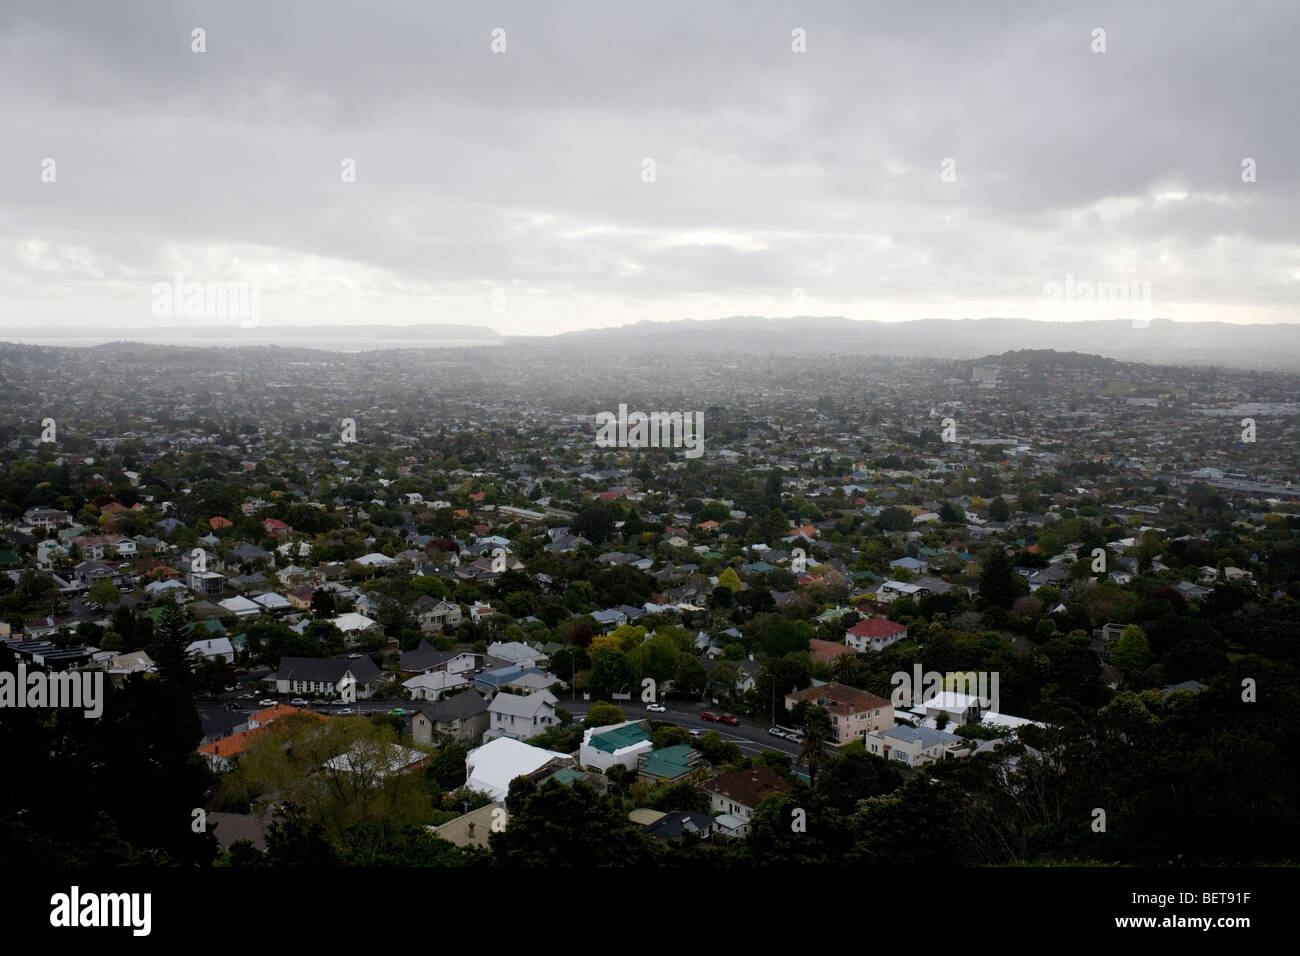 Southern Auckland from Mt. Eden. - Stock Image